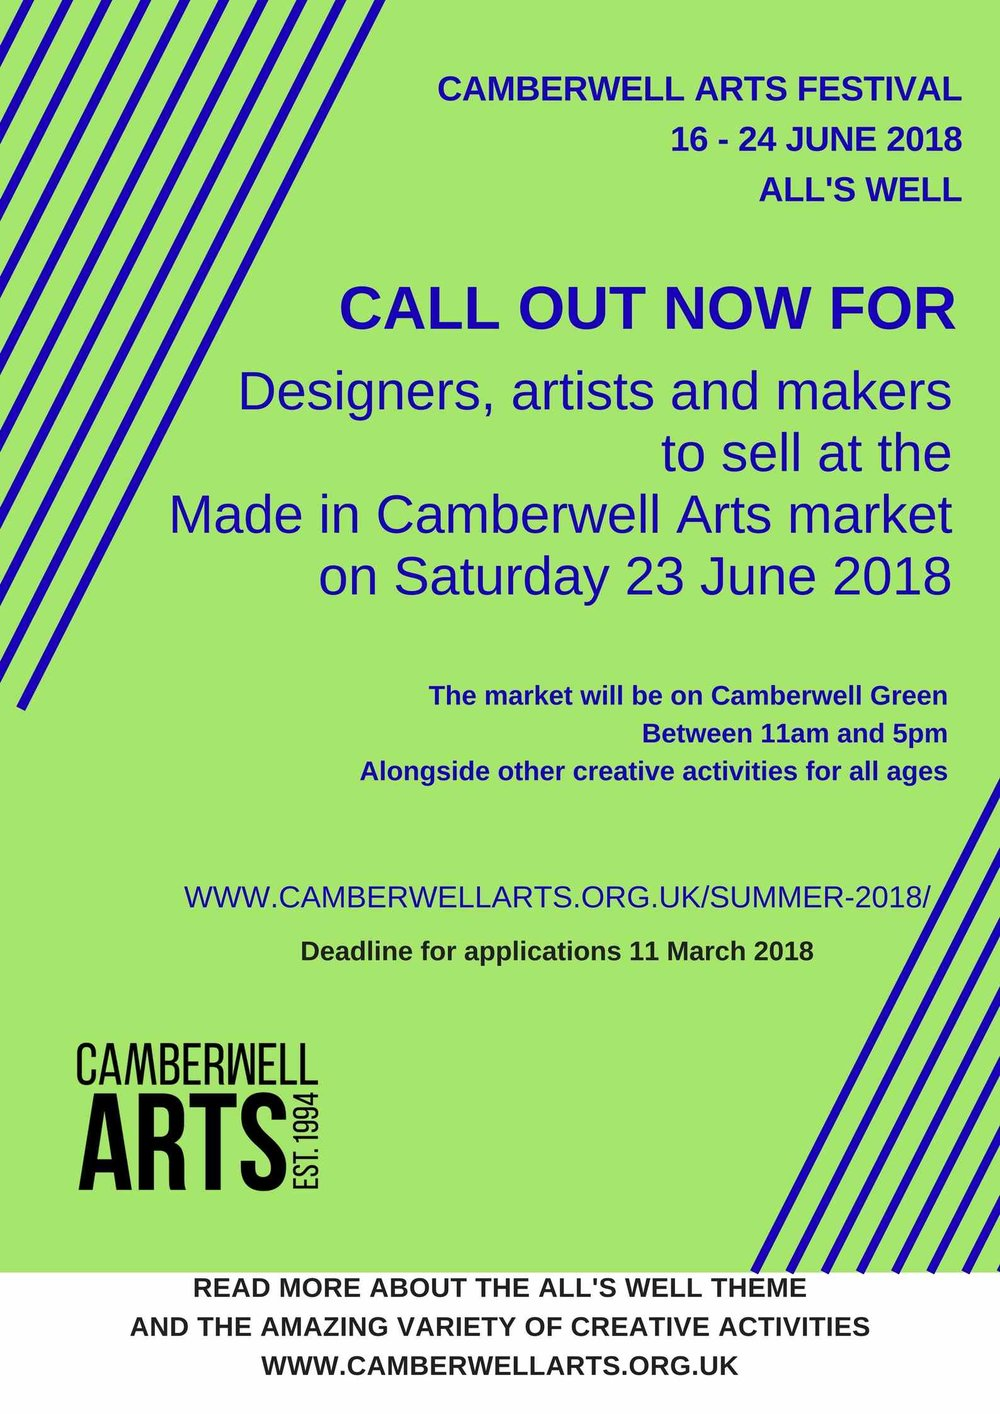 Click  HERE  for the application to take part in the Made in Camberwell market